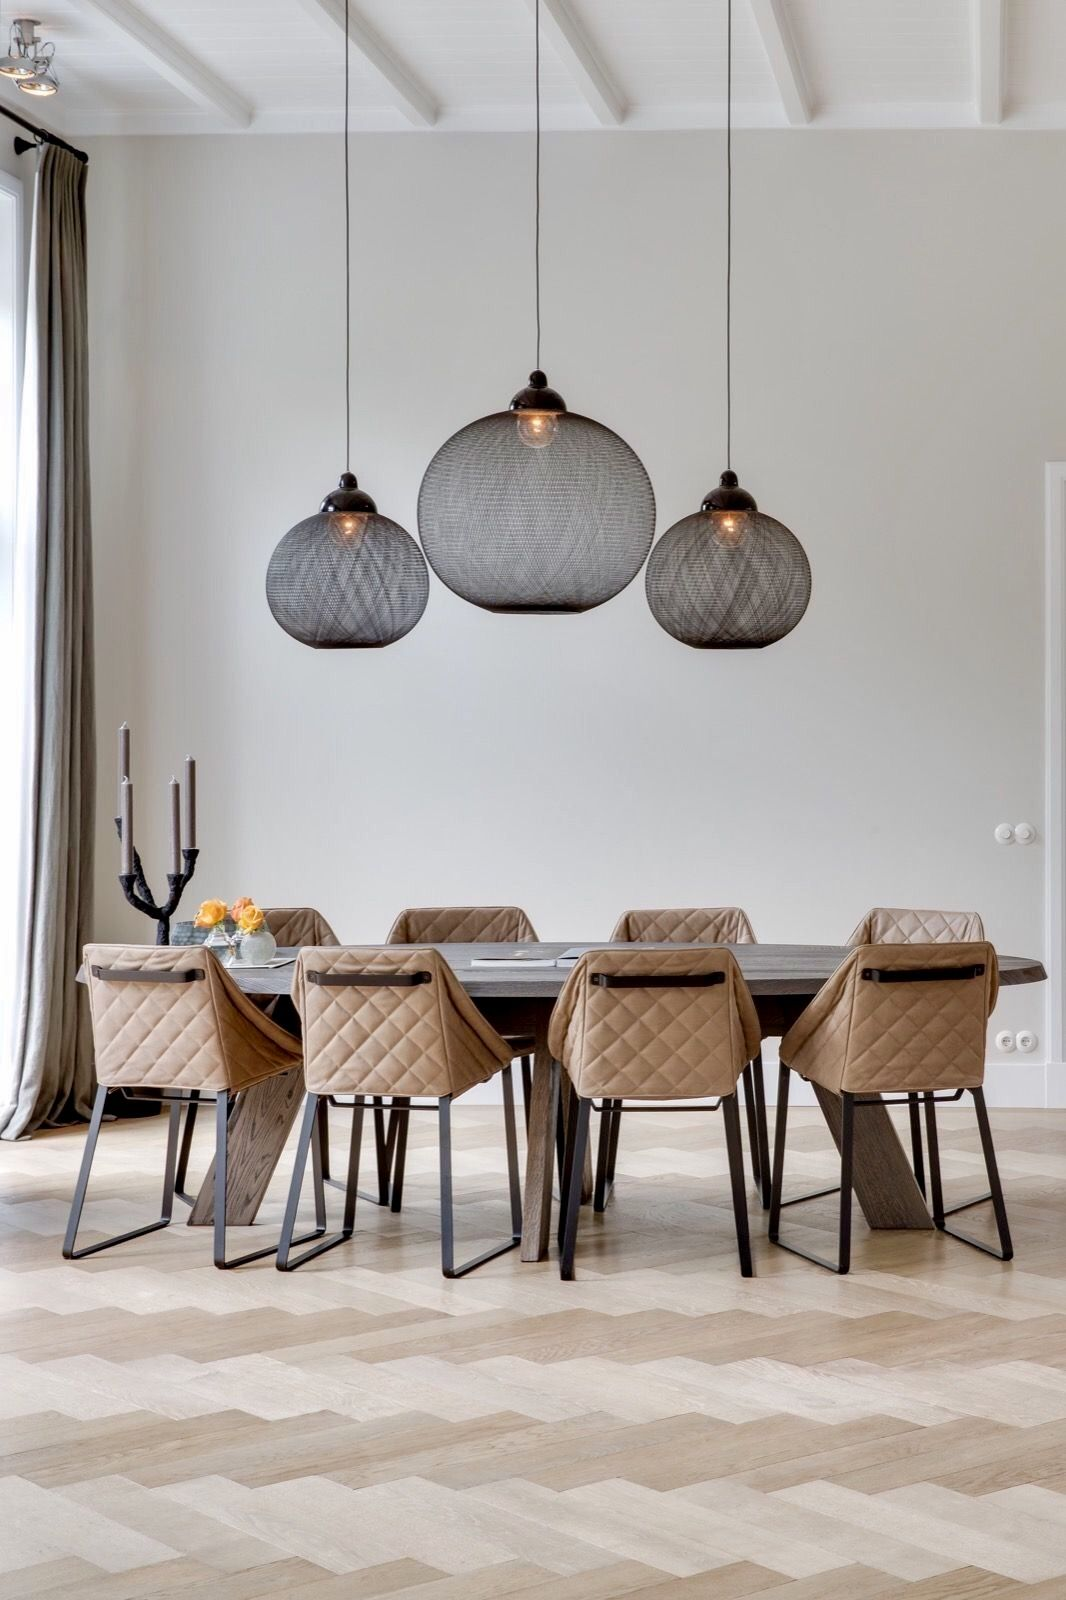 Best Ideas Of Pendant Lighting For Kitchen Dining Room And - Pendulum lights for dining room